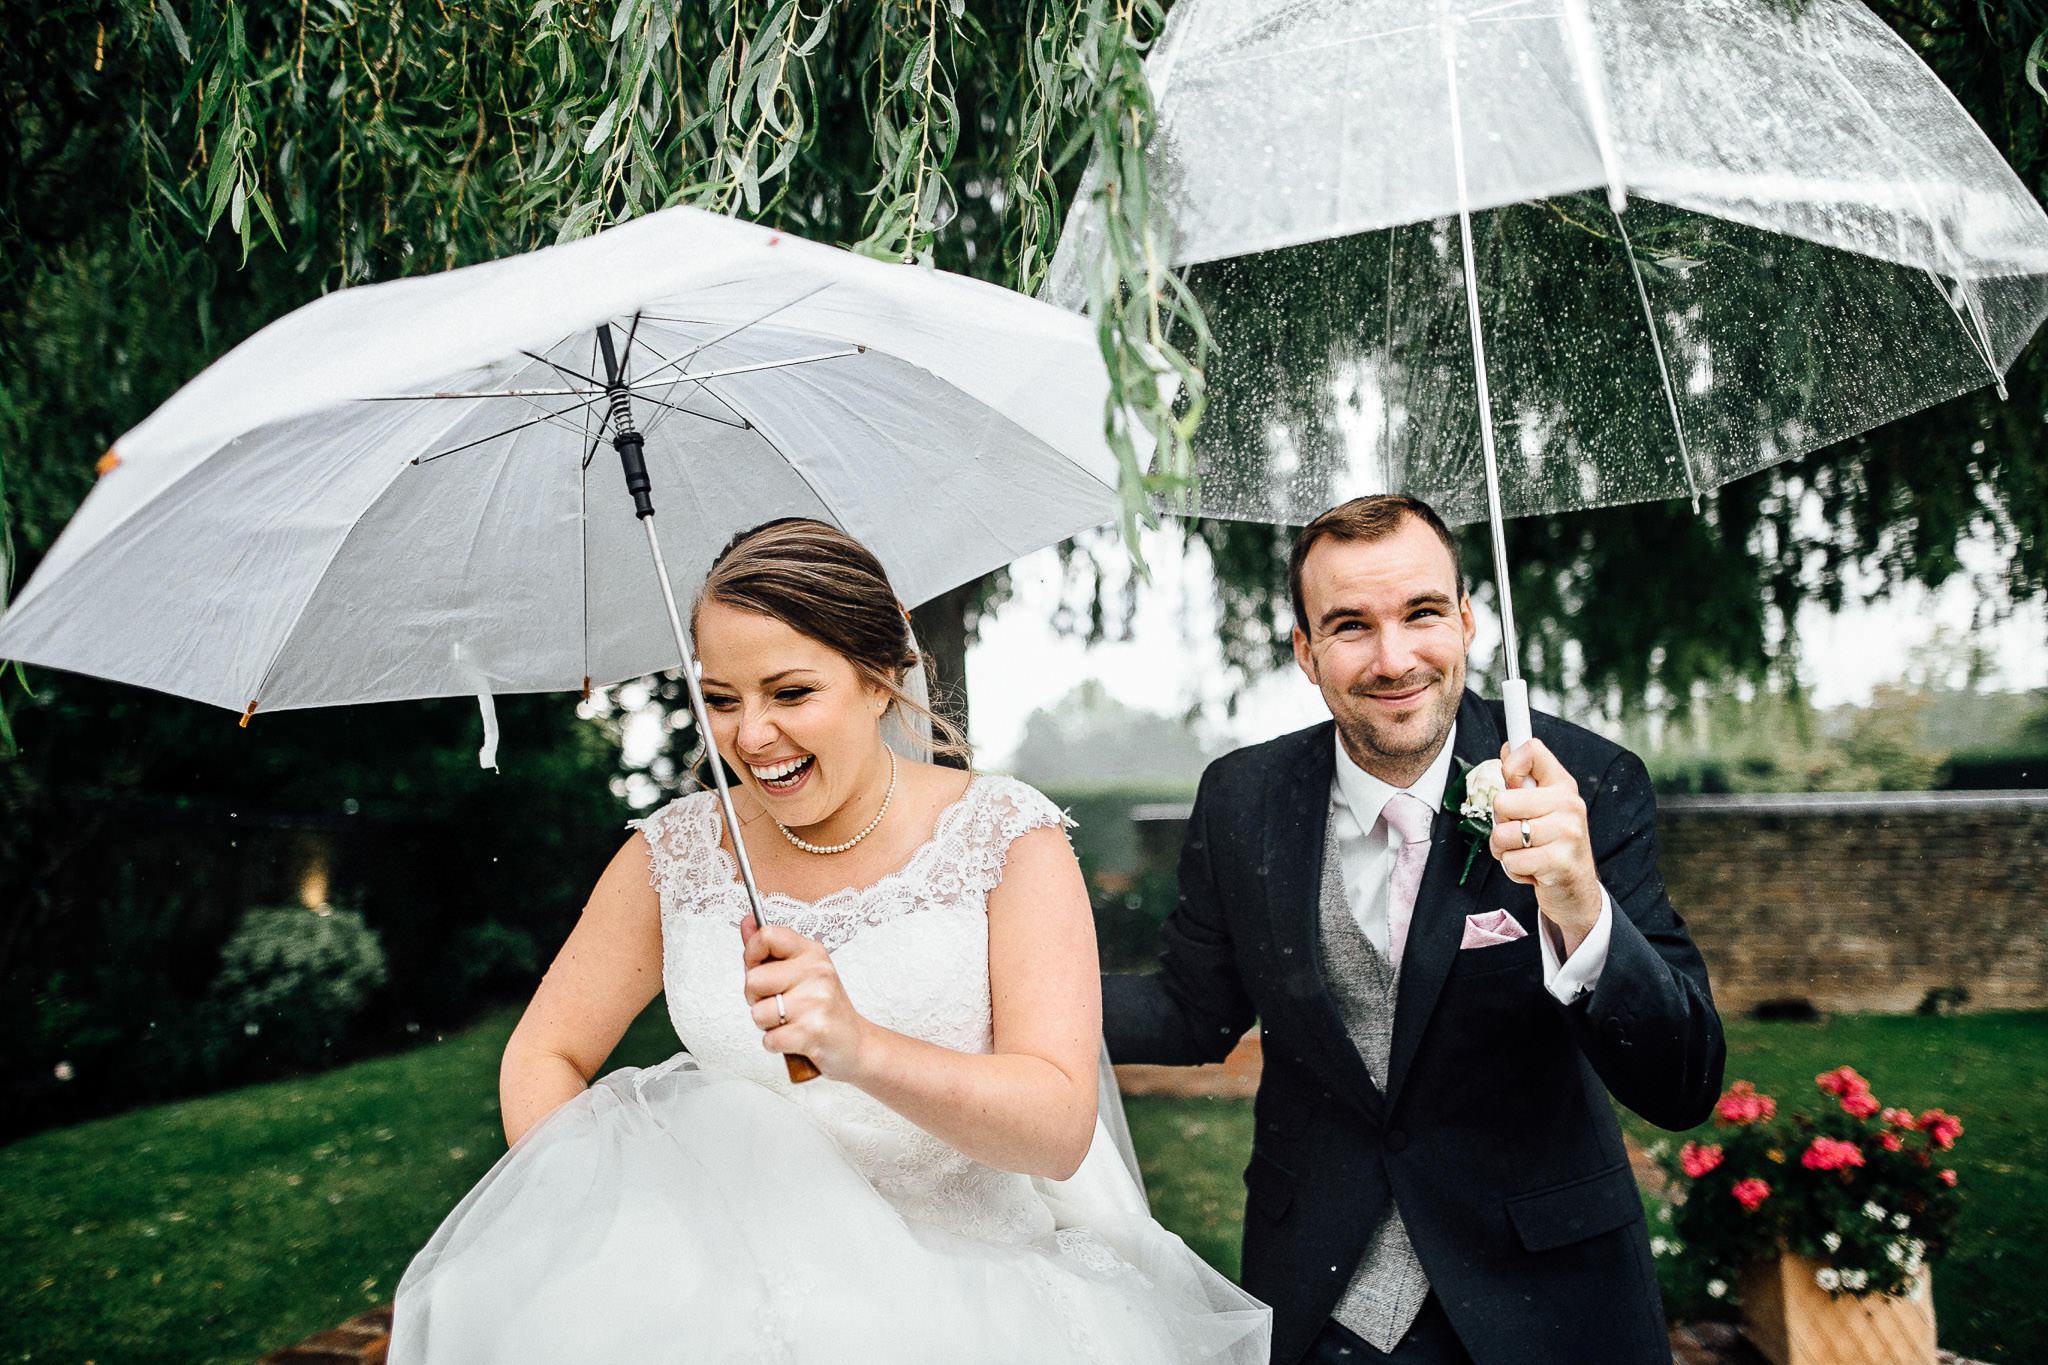 camden town wedding photos bride and groom in the rain